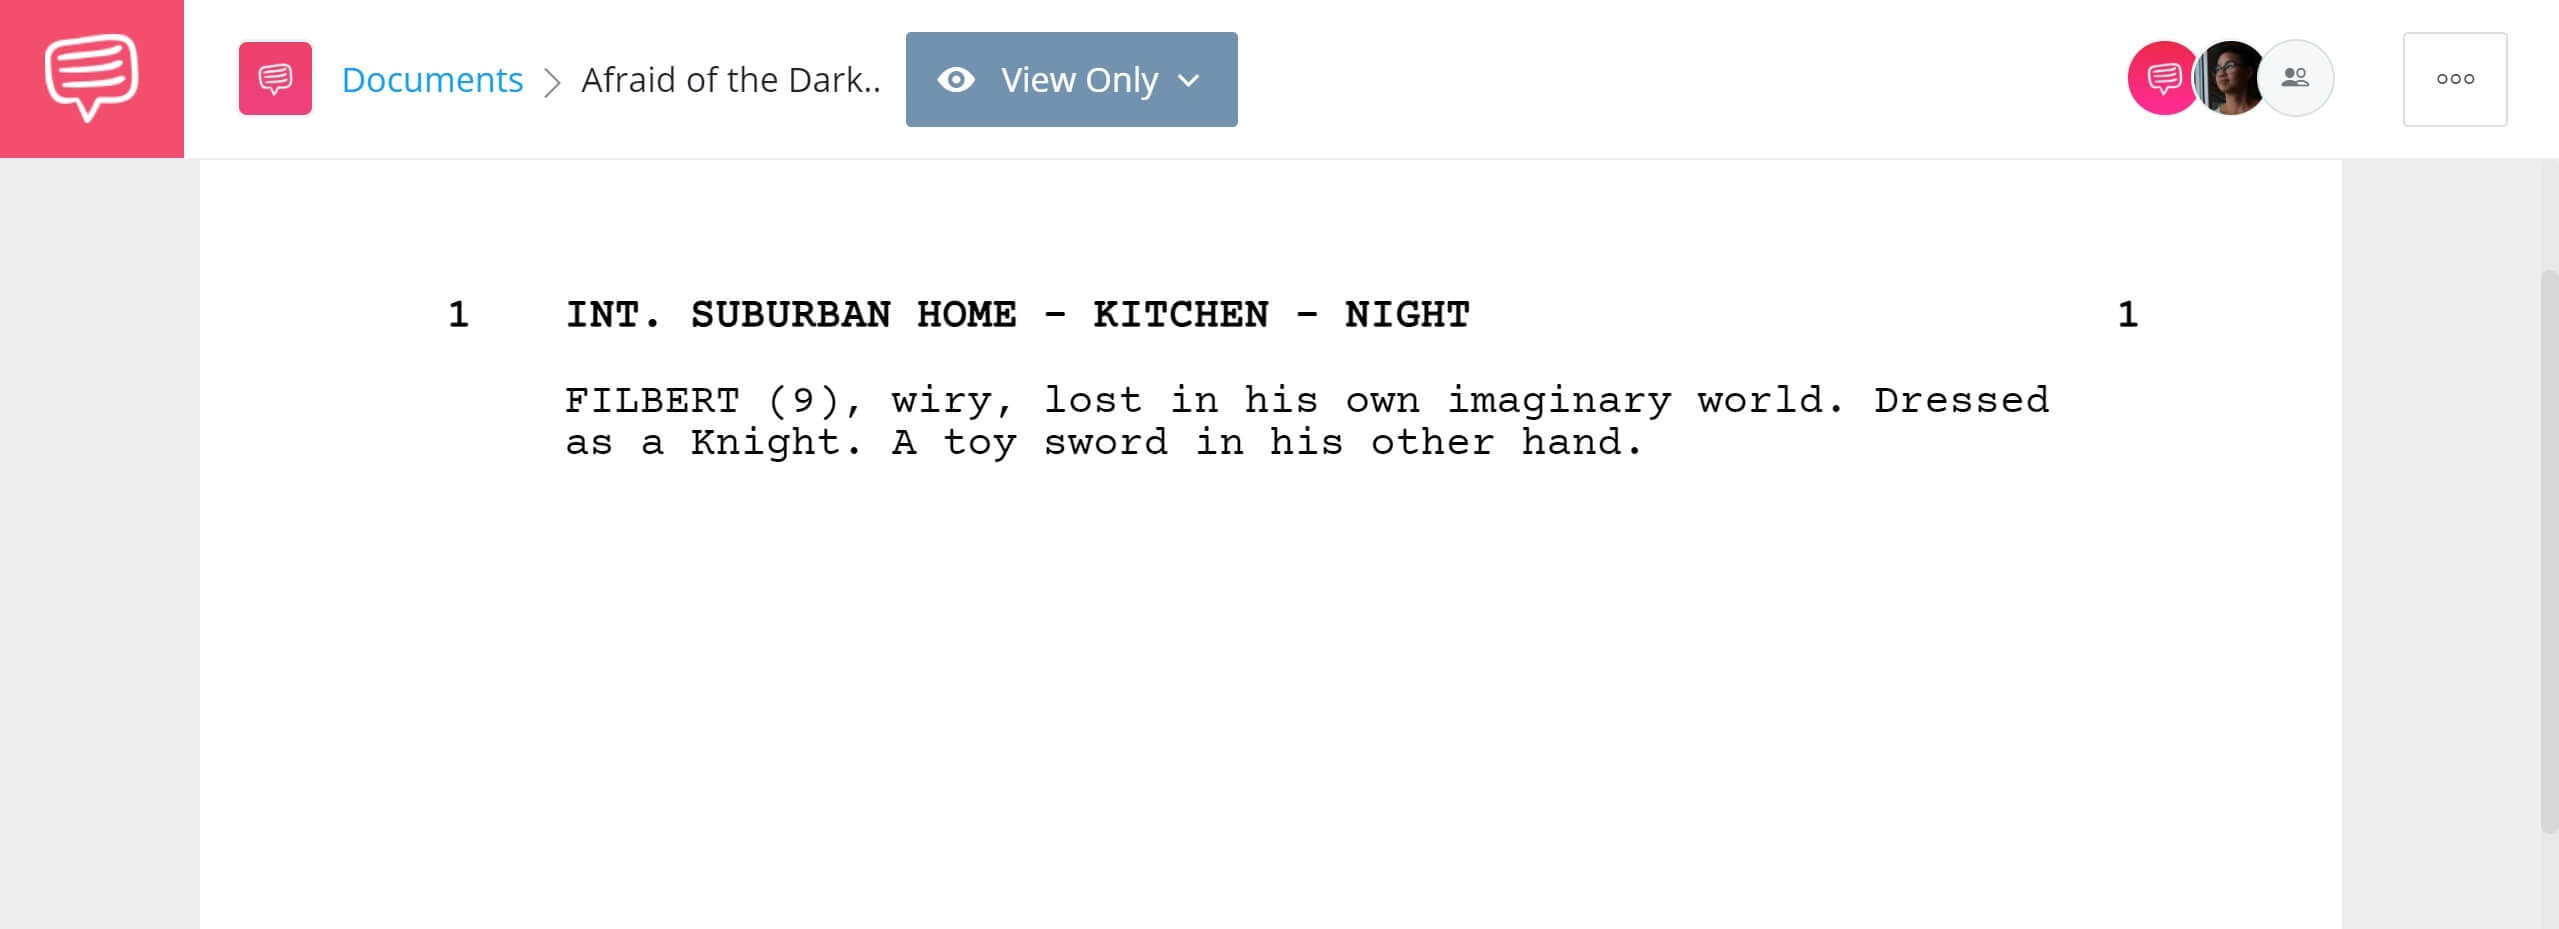 how to write a movie script - afraid of the dark - studiobinder screenwriting feature - character intro - double hyphen scene heading (1)